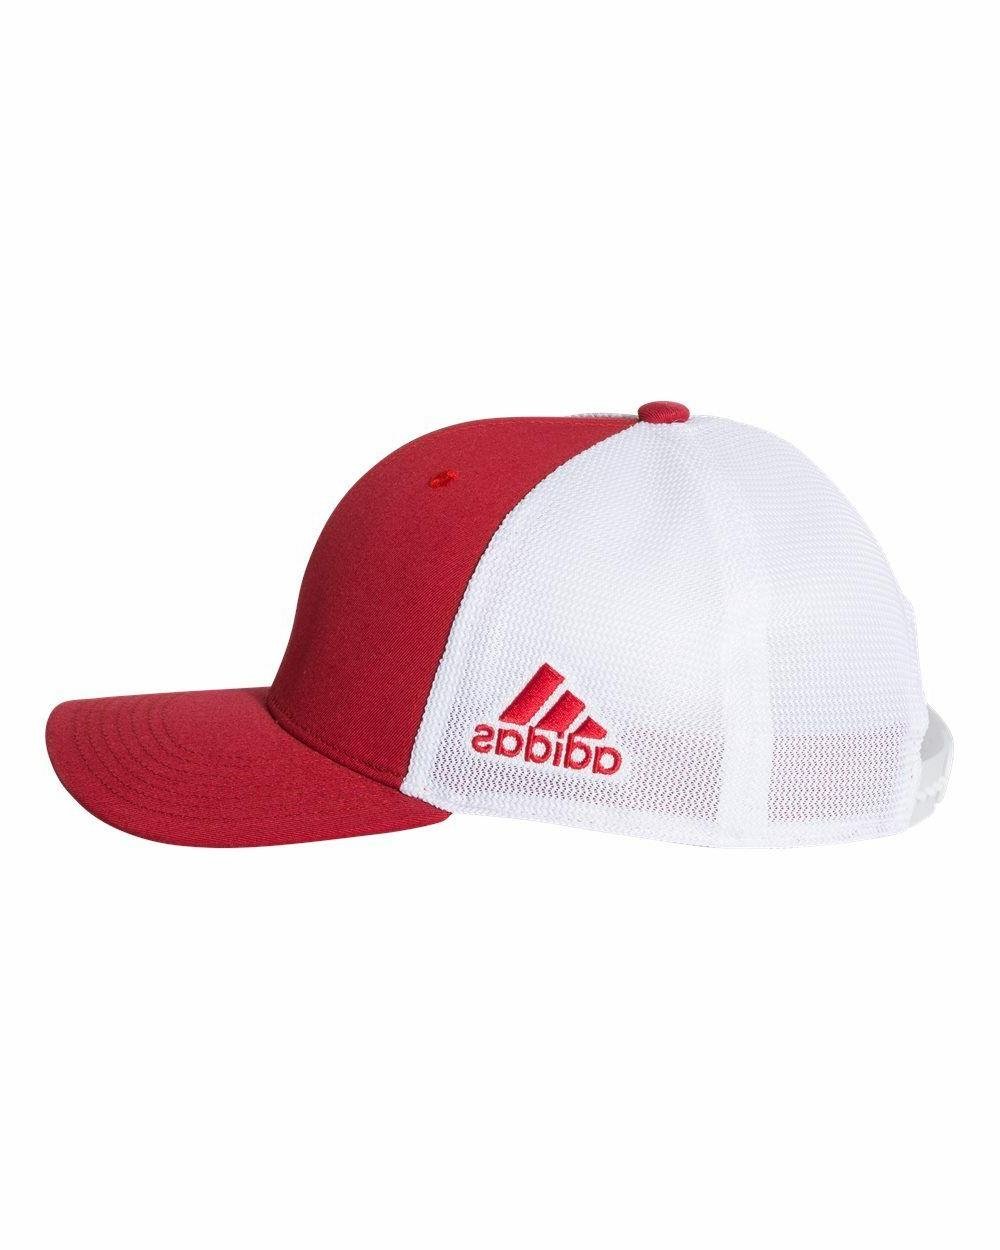 ADIDAS Adjustable Mesh Trucker Baseball Hat, SIZES